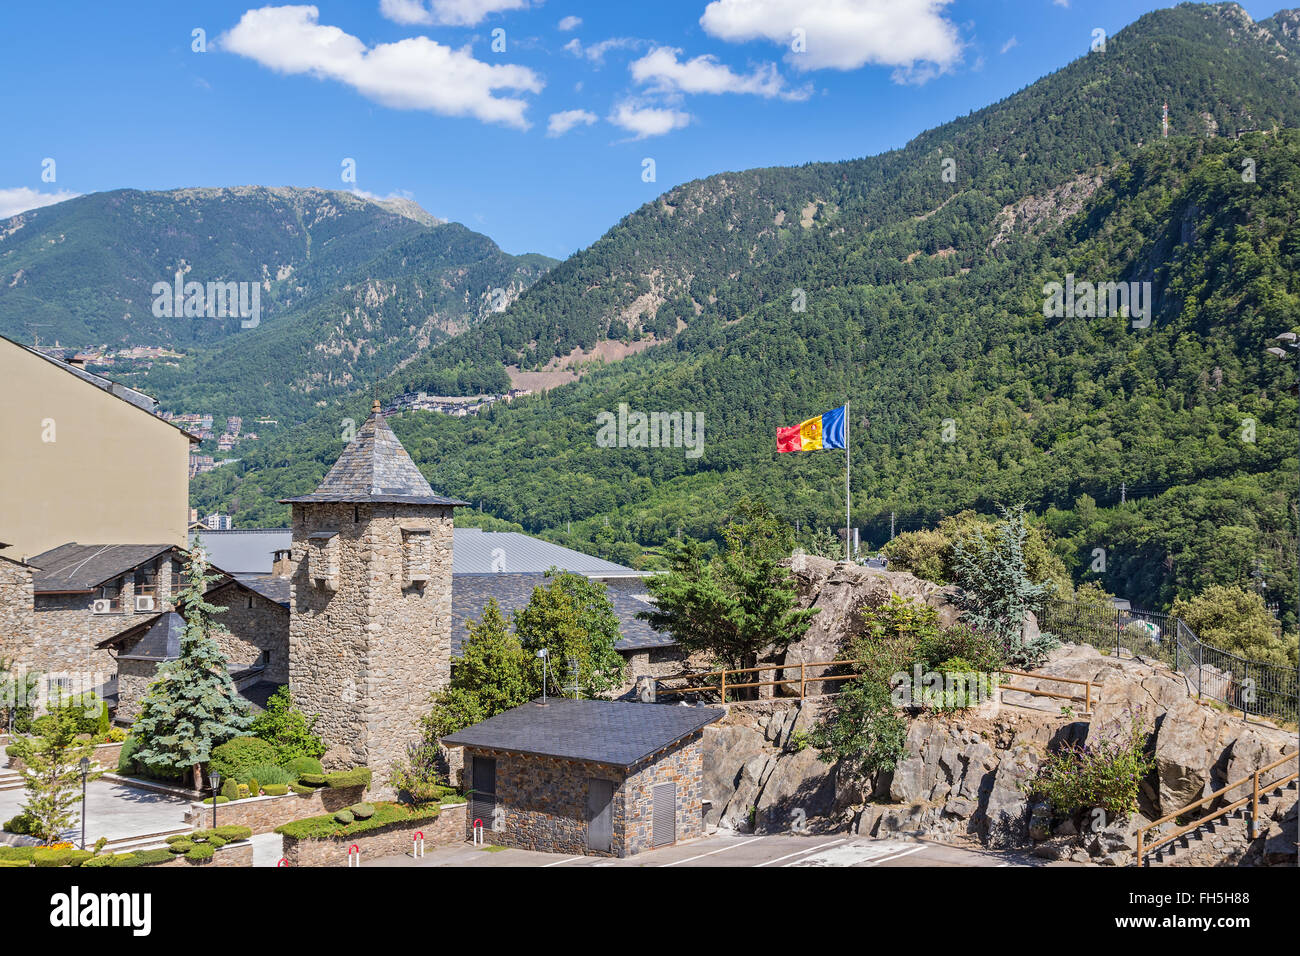 Andorra La Vella, capital of Andorra, surrounded by beautiful mountains. - Stock Image